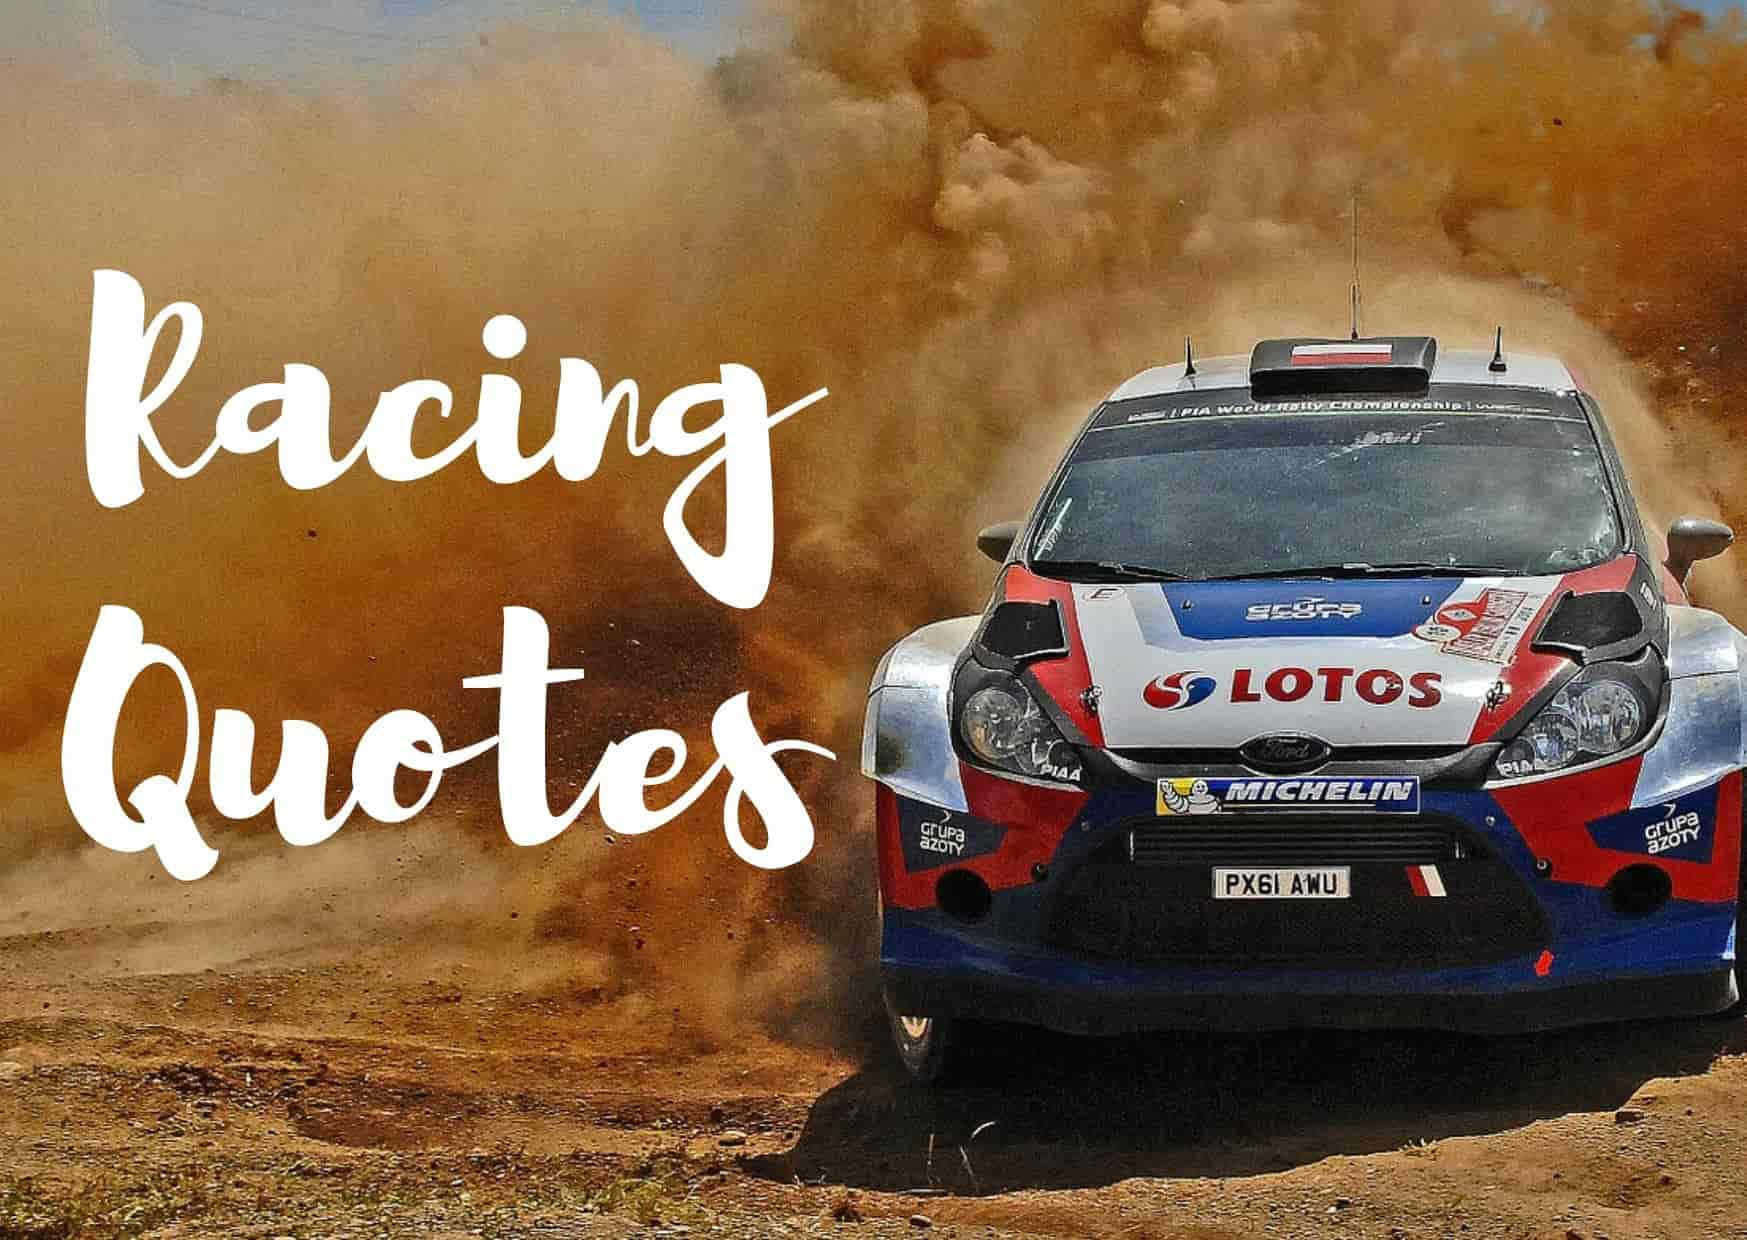 Top 48 Motor Racing Quotes